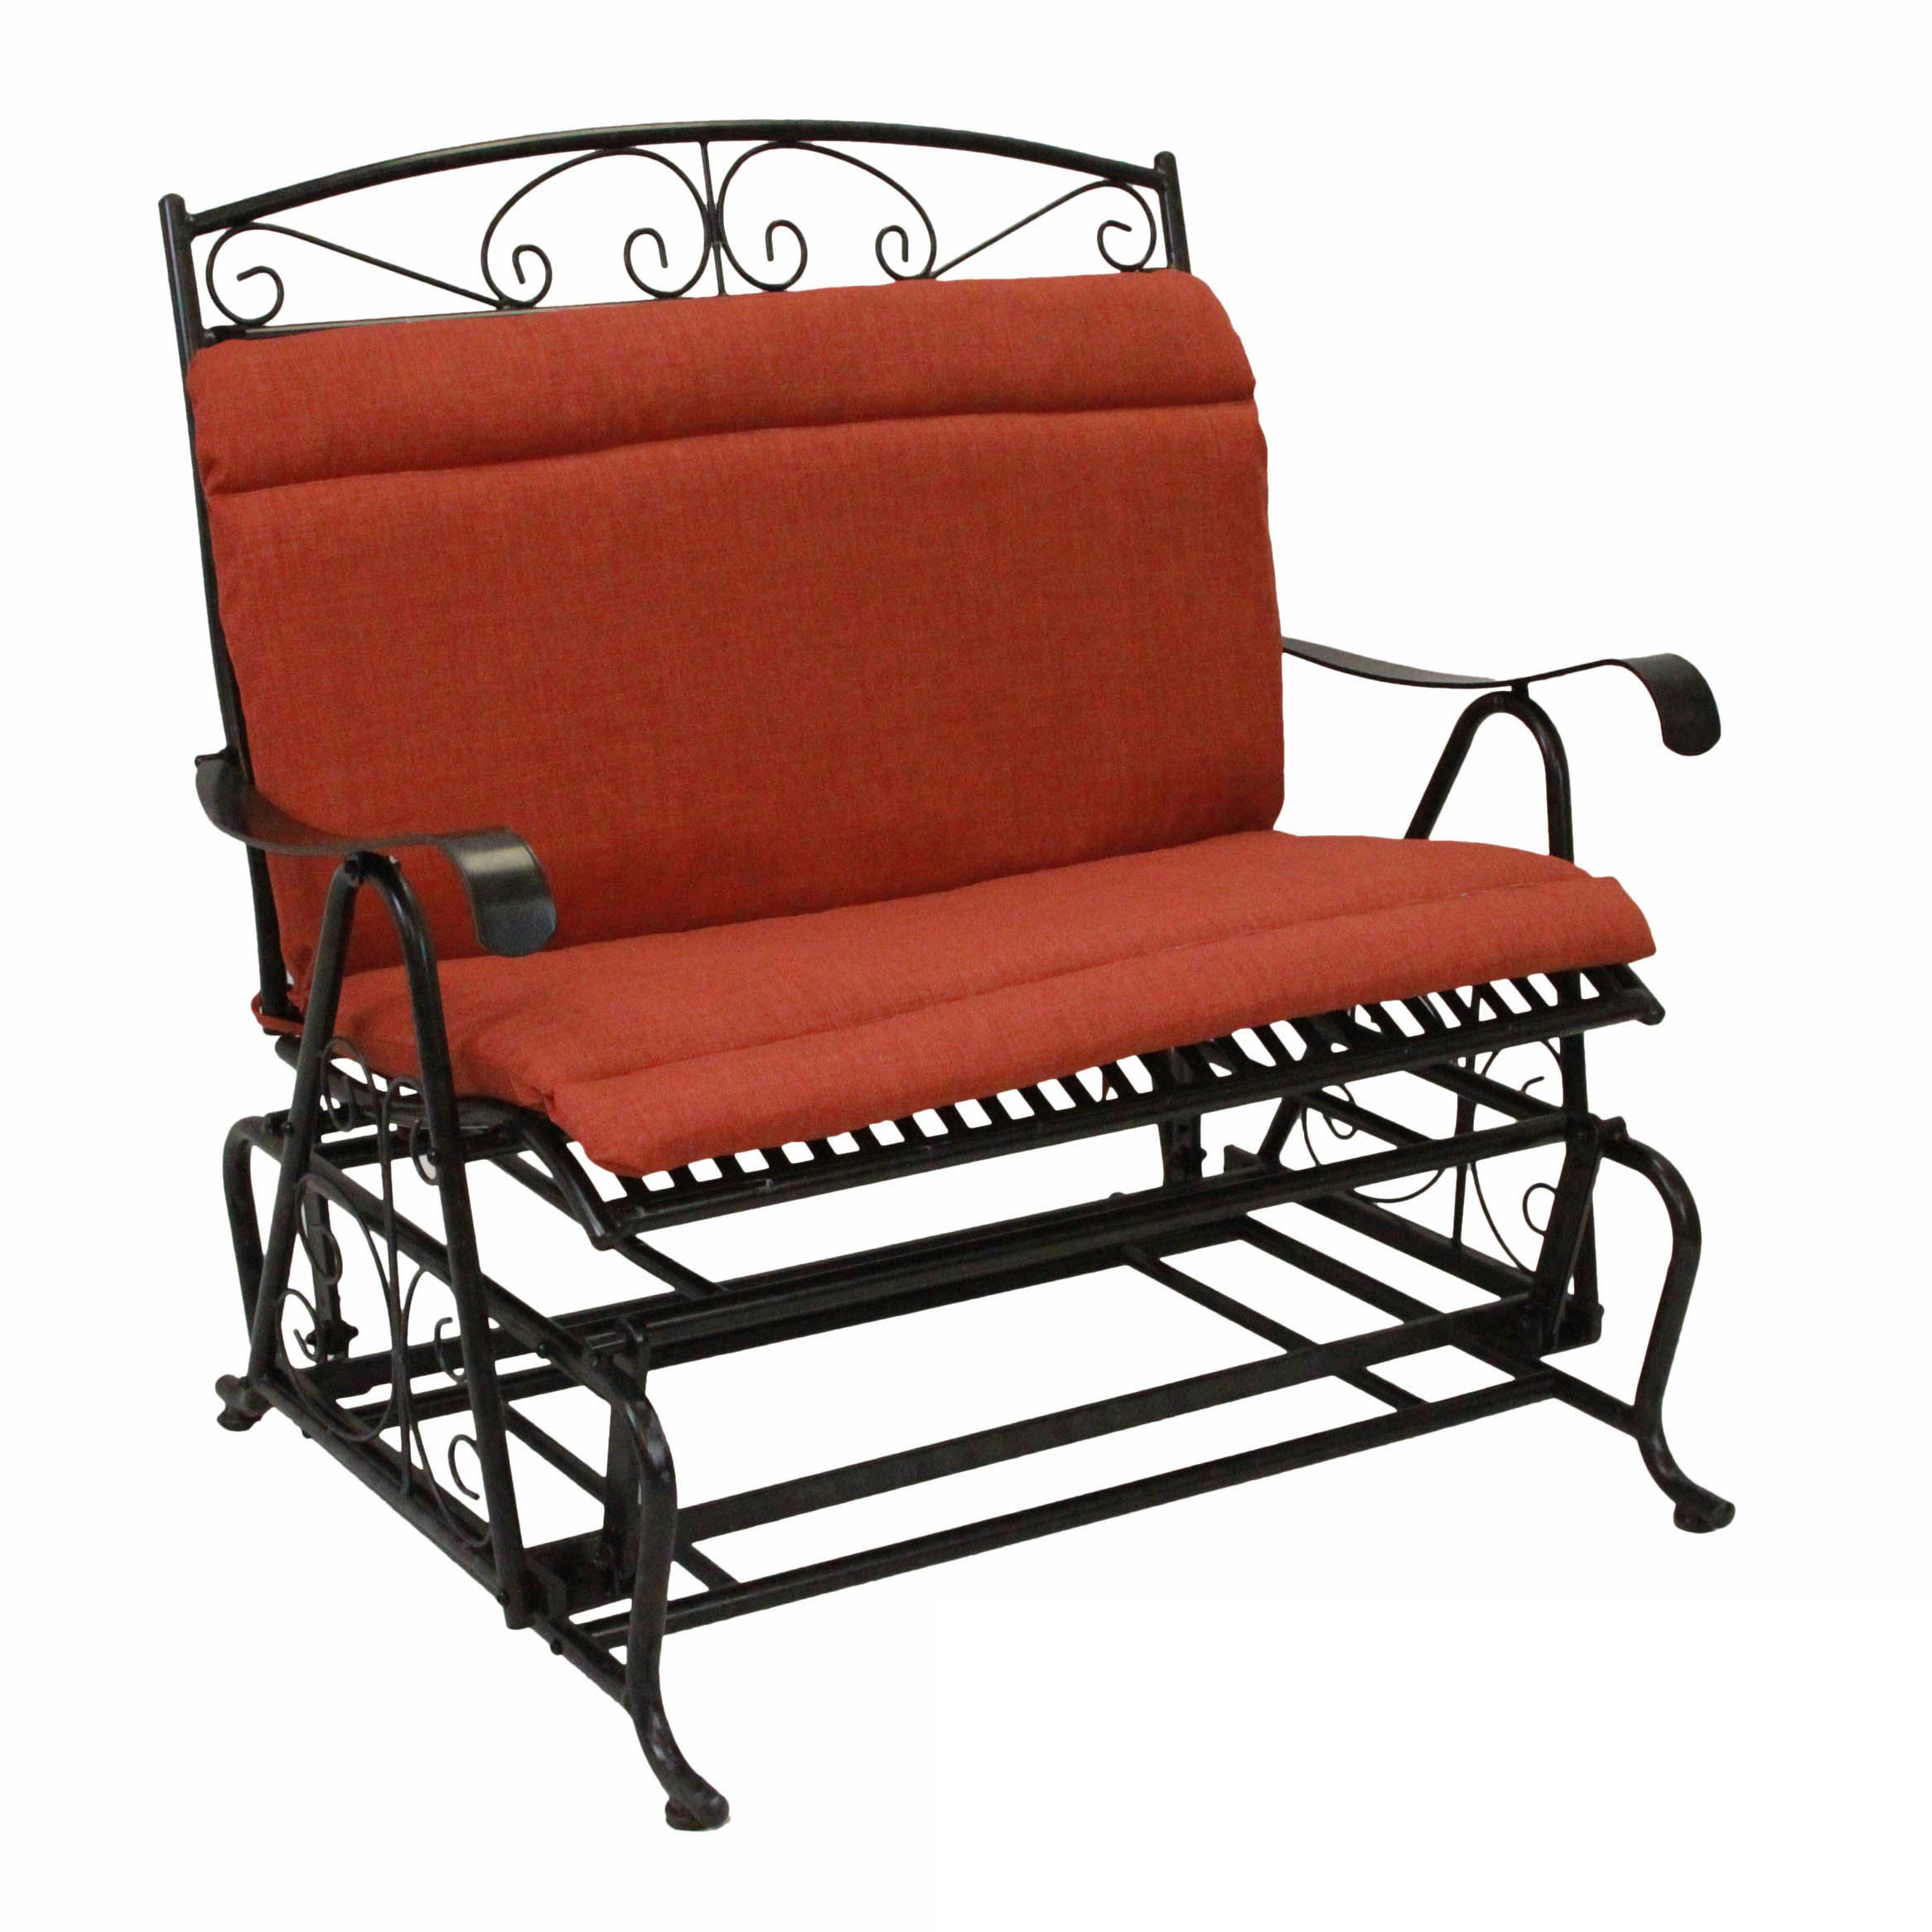 Details About Blazing Needles All Weather Indoor/outdoor Double Chair Pertaining To Indoor/outdoor Double Glider Benches (View 10 of 25)